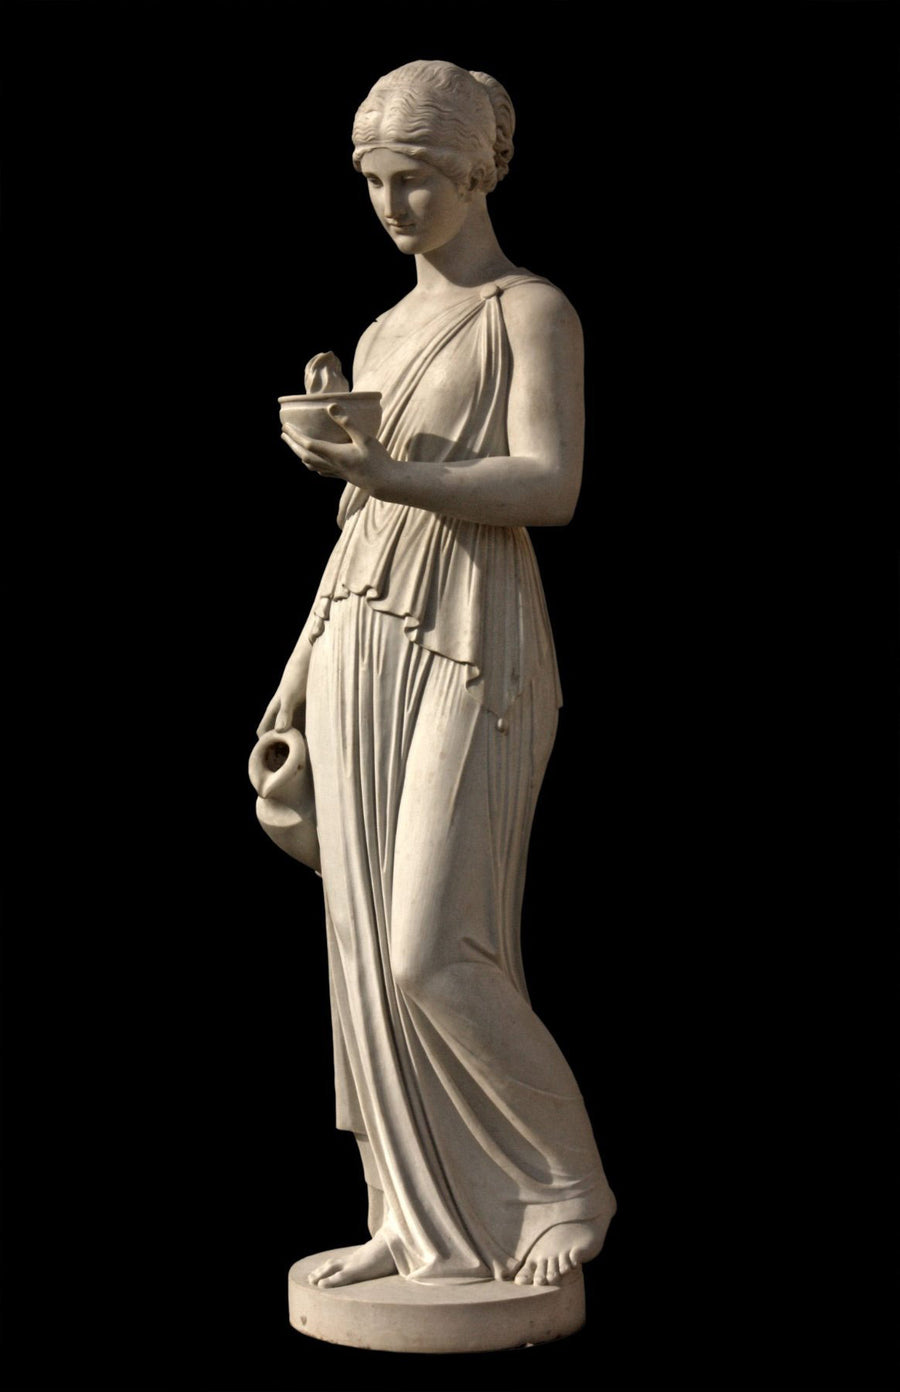 photo with black background of plaster cast sculpture of goddess Hebe in robes holding a jug in right hand at her side and a bowl with a flame in left hand raised in front of her